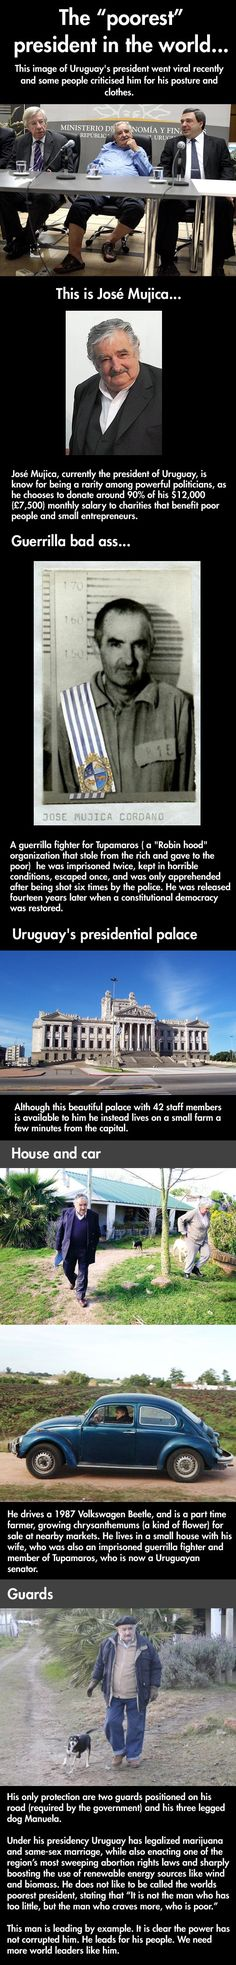 This must be why I've hardly met any Uruguayans. Aman a su presidente y su país por si.